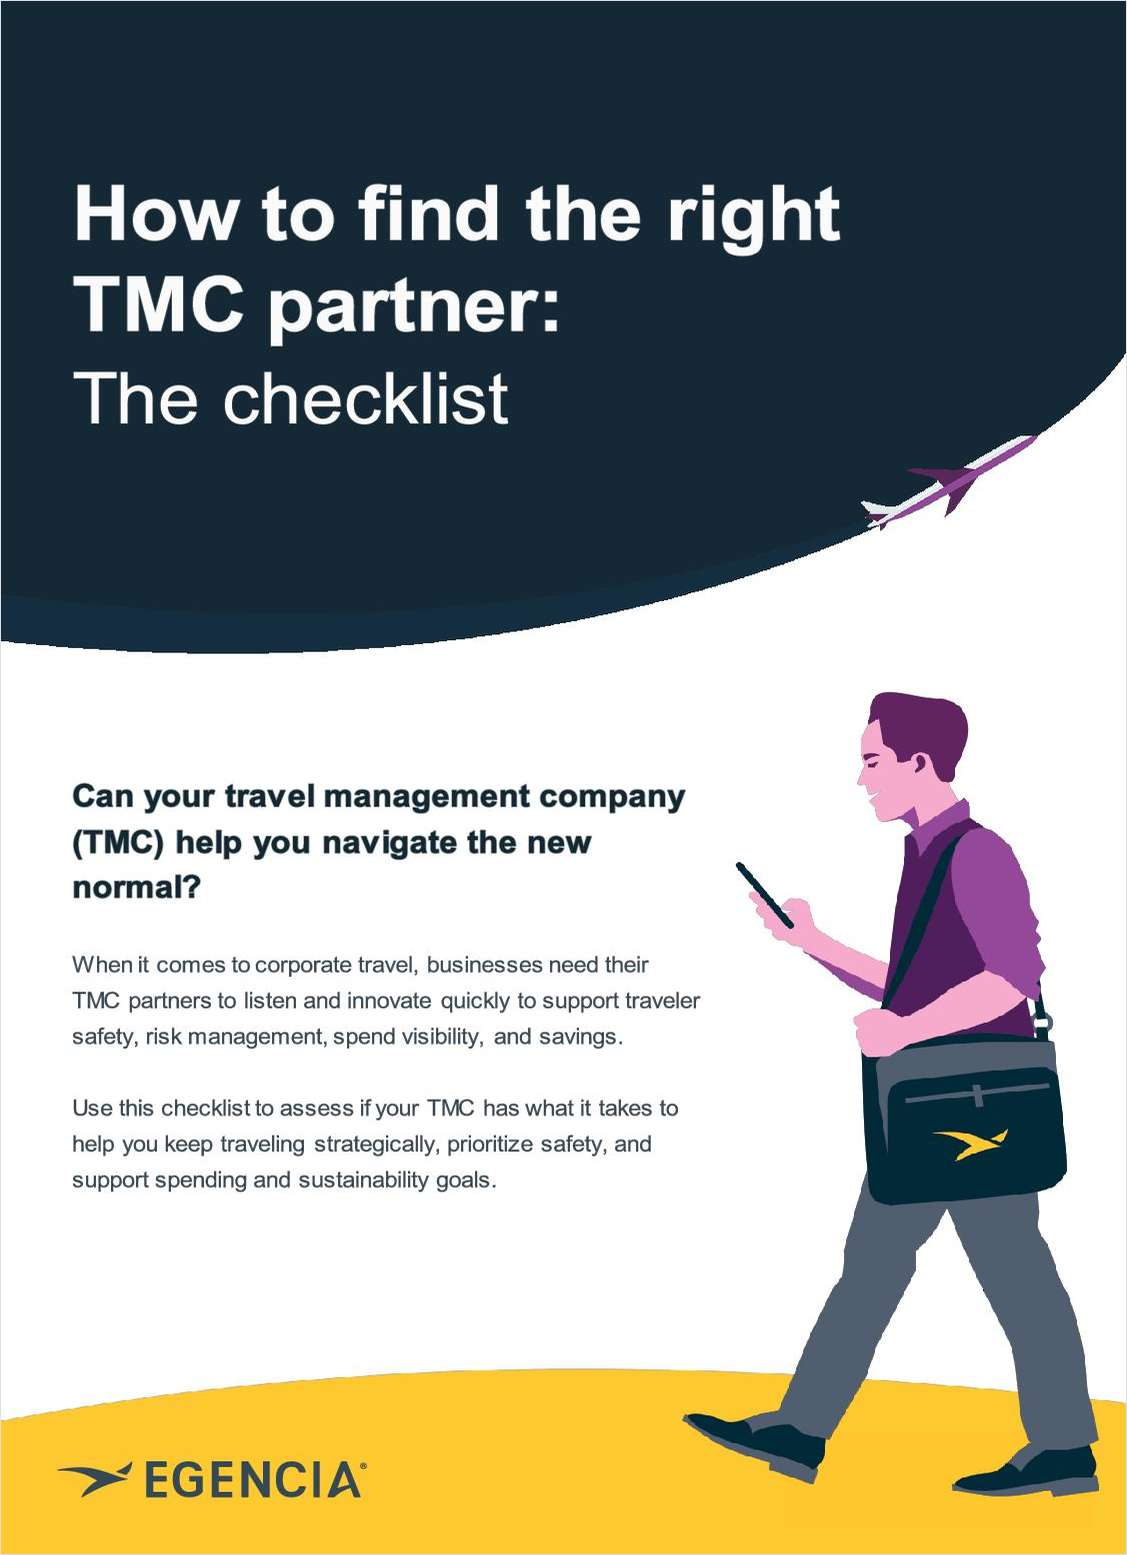 How to Find the Right TMC Partner